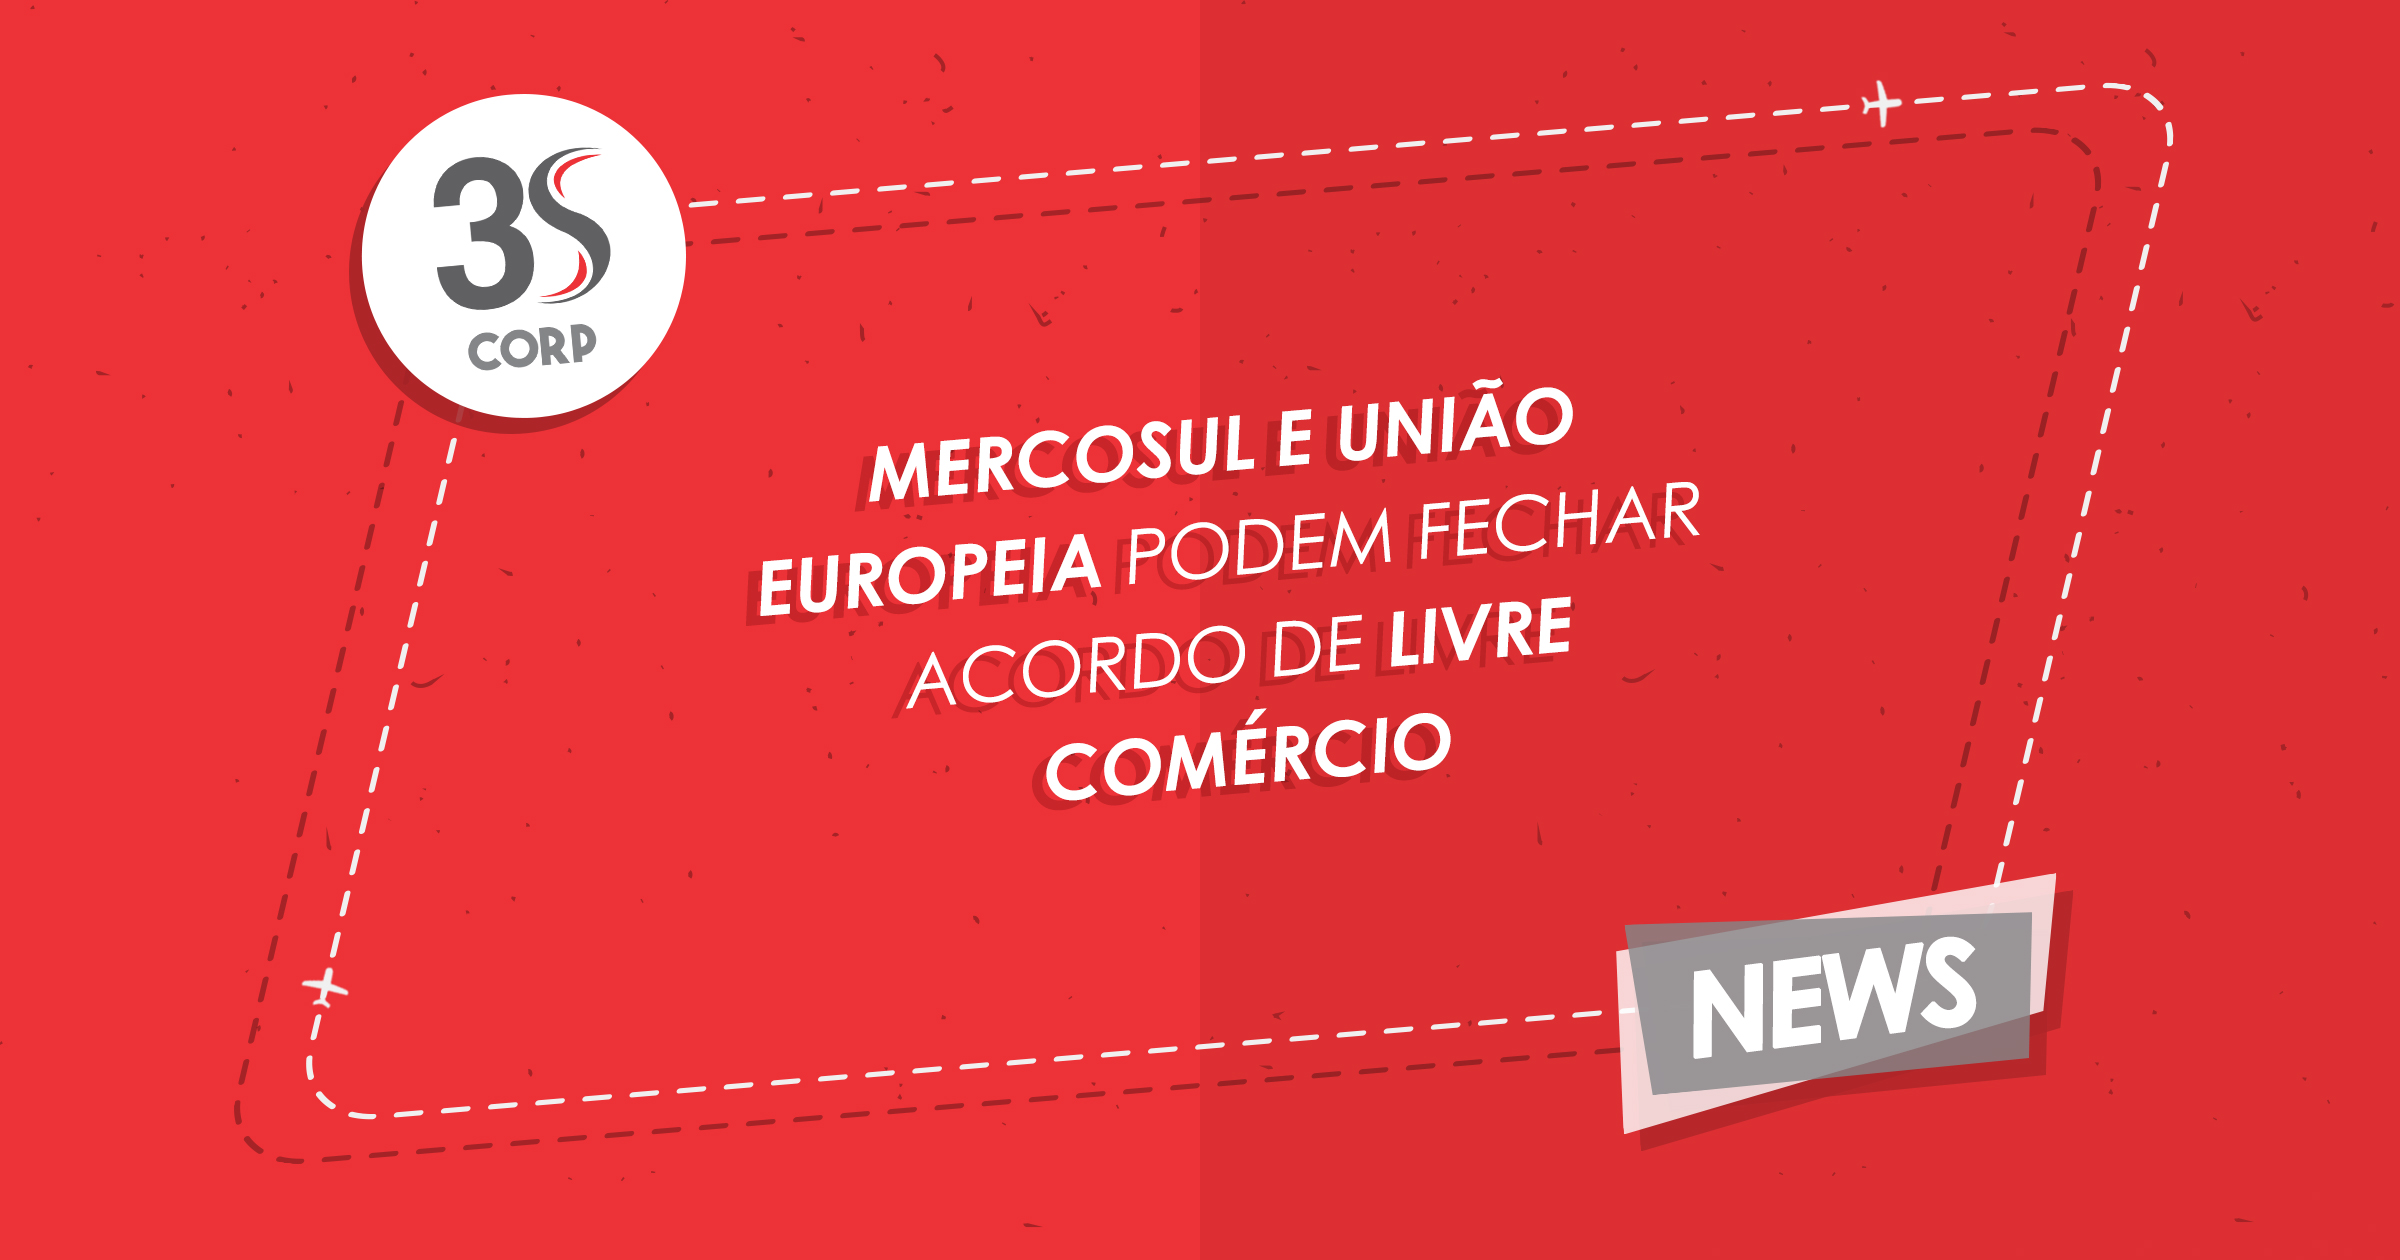 Blog News_ (mercosul e união europeia)